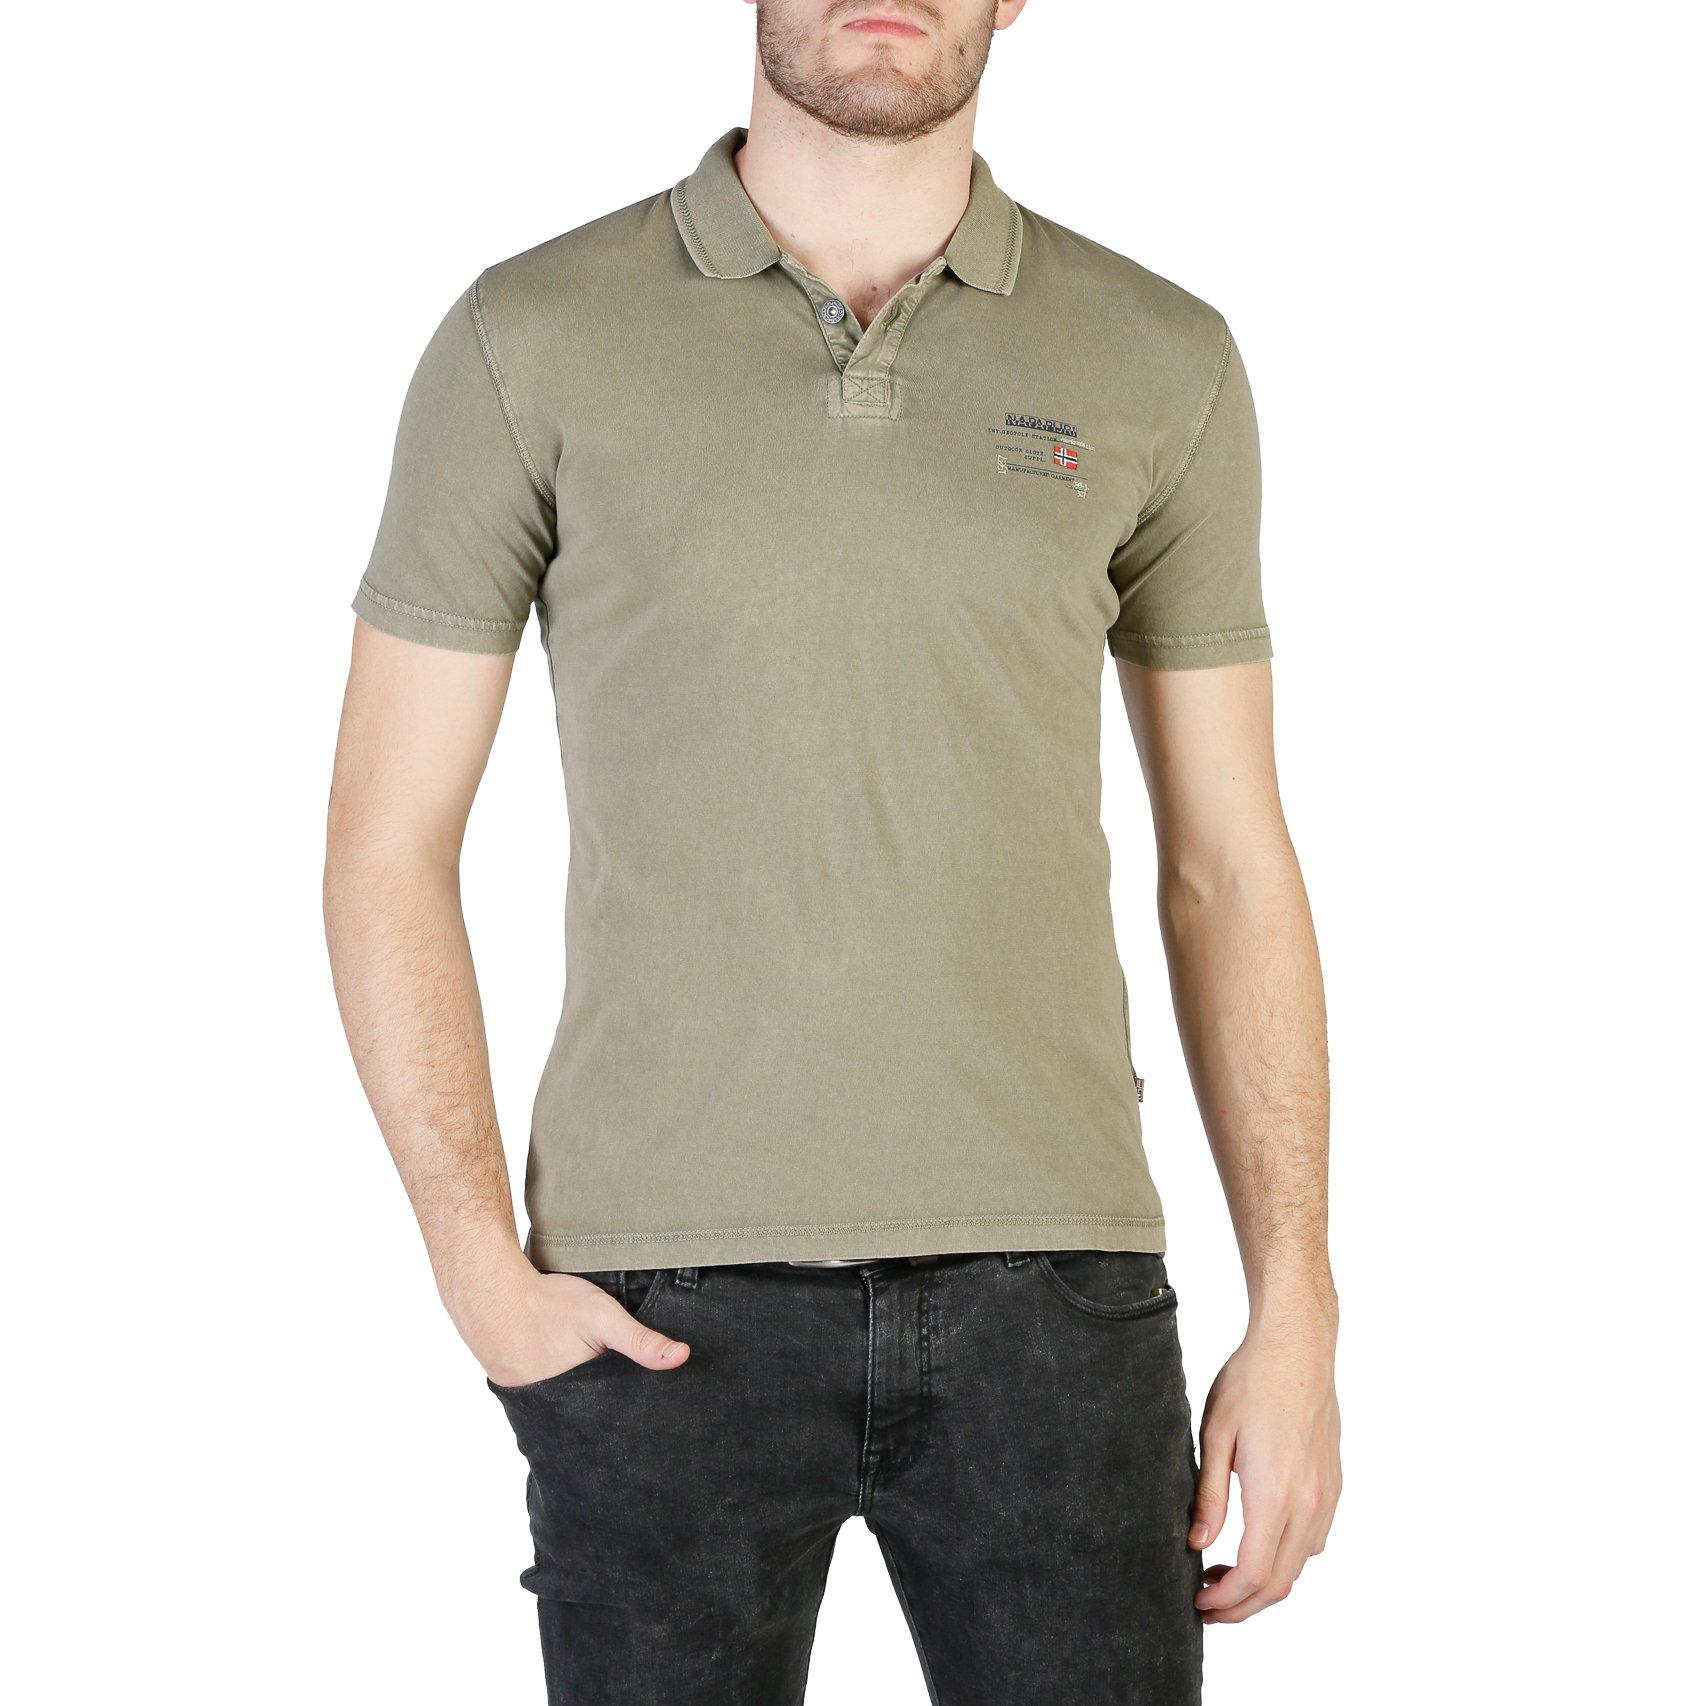 Men's Green Sleeve In N0yhqk Napapijri Polo Short 2019 Shirt wkPZ80NnOX